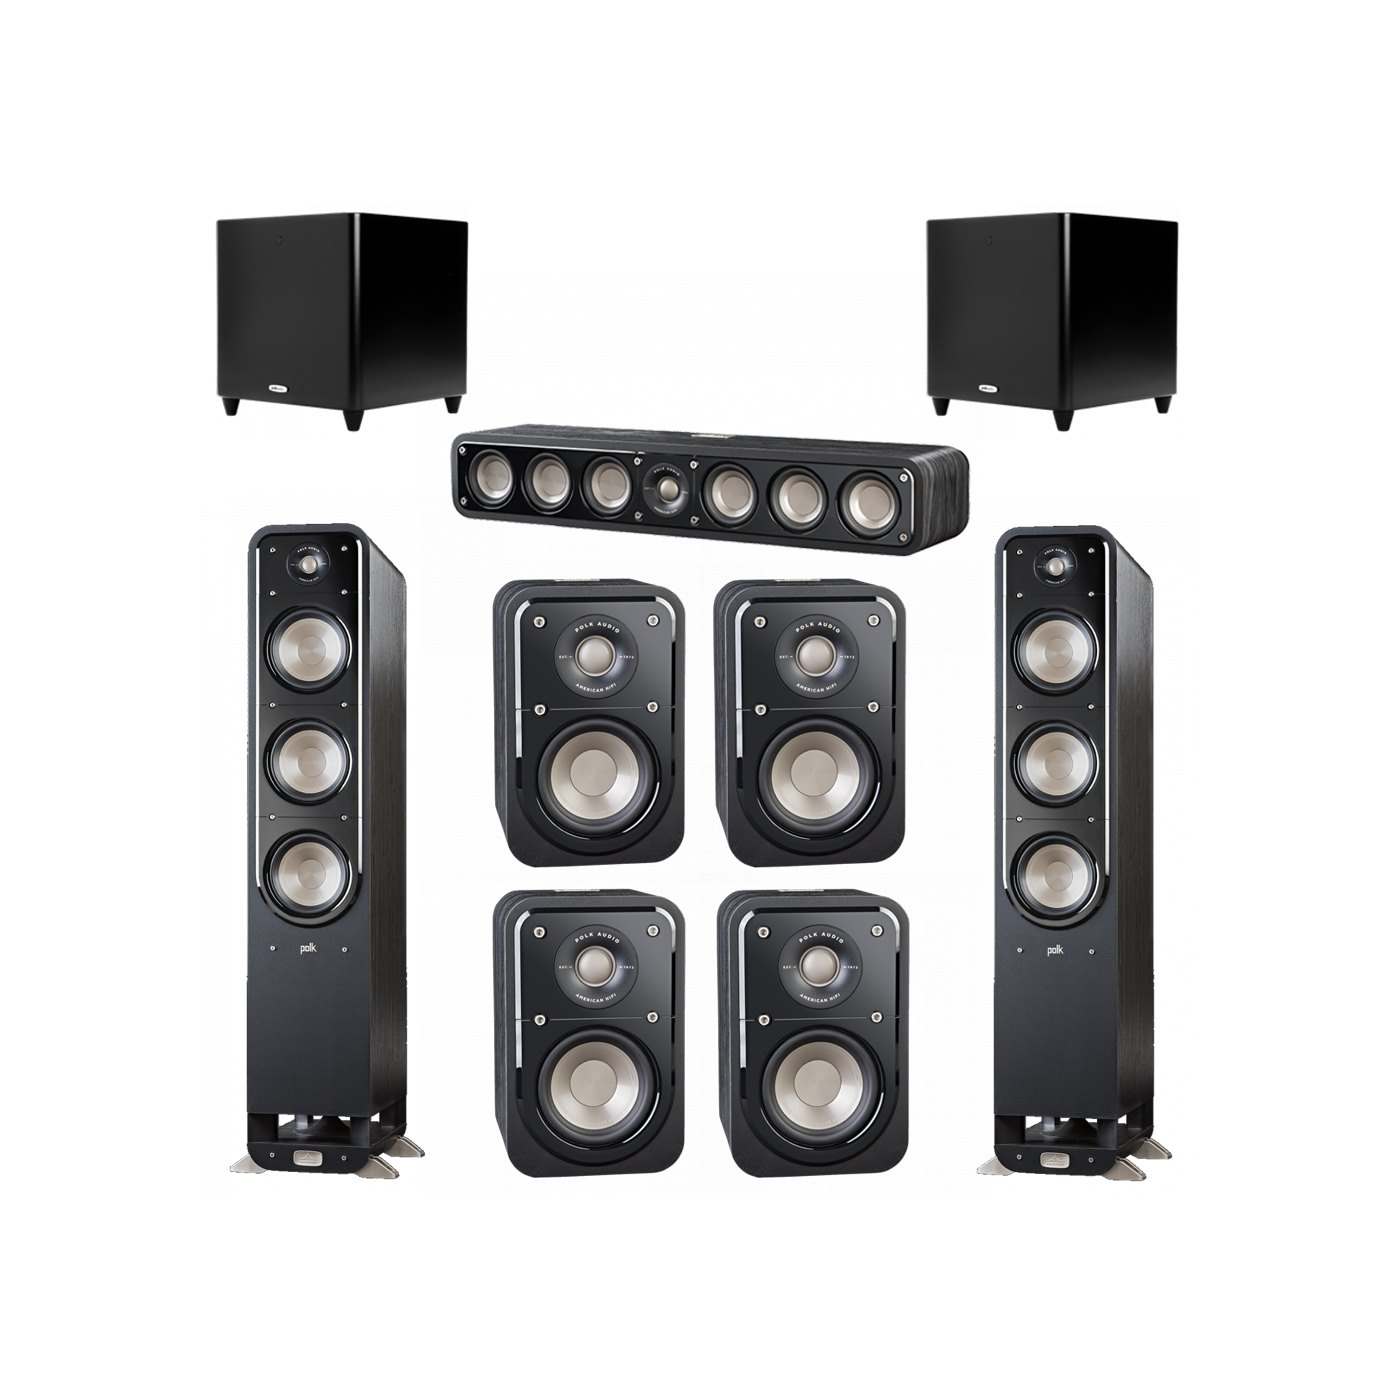 Polk Audio Signature 7.2 System with 2 S60 Tower Speaker, 1 Polk S35 Center Speaker, 4 Polk S10 Bookshelf Speaker, 2 Polk DSW PRO 660 wi Subwoofer